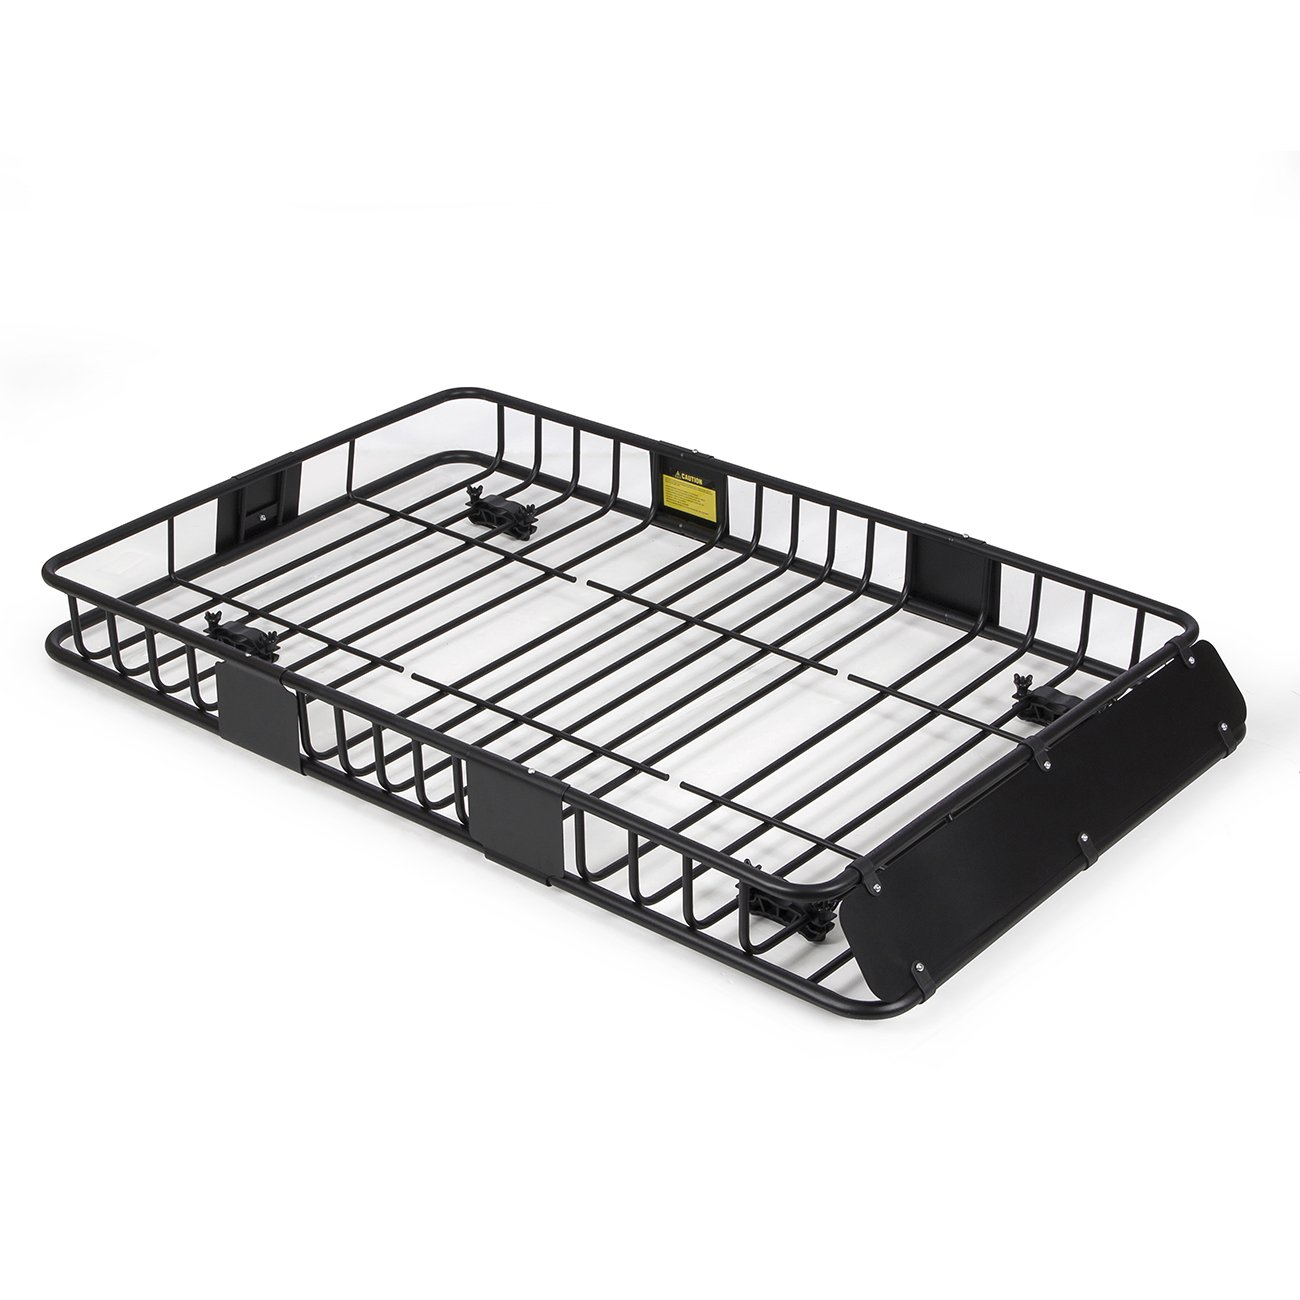 ARKSEN 64-Inch Black Roof Rack Cargo Carrier Basket